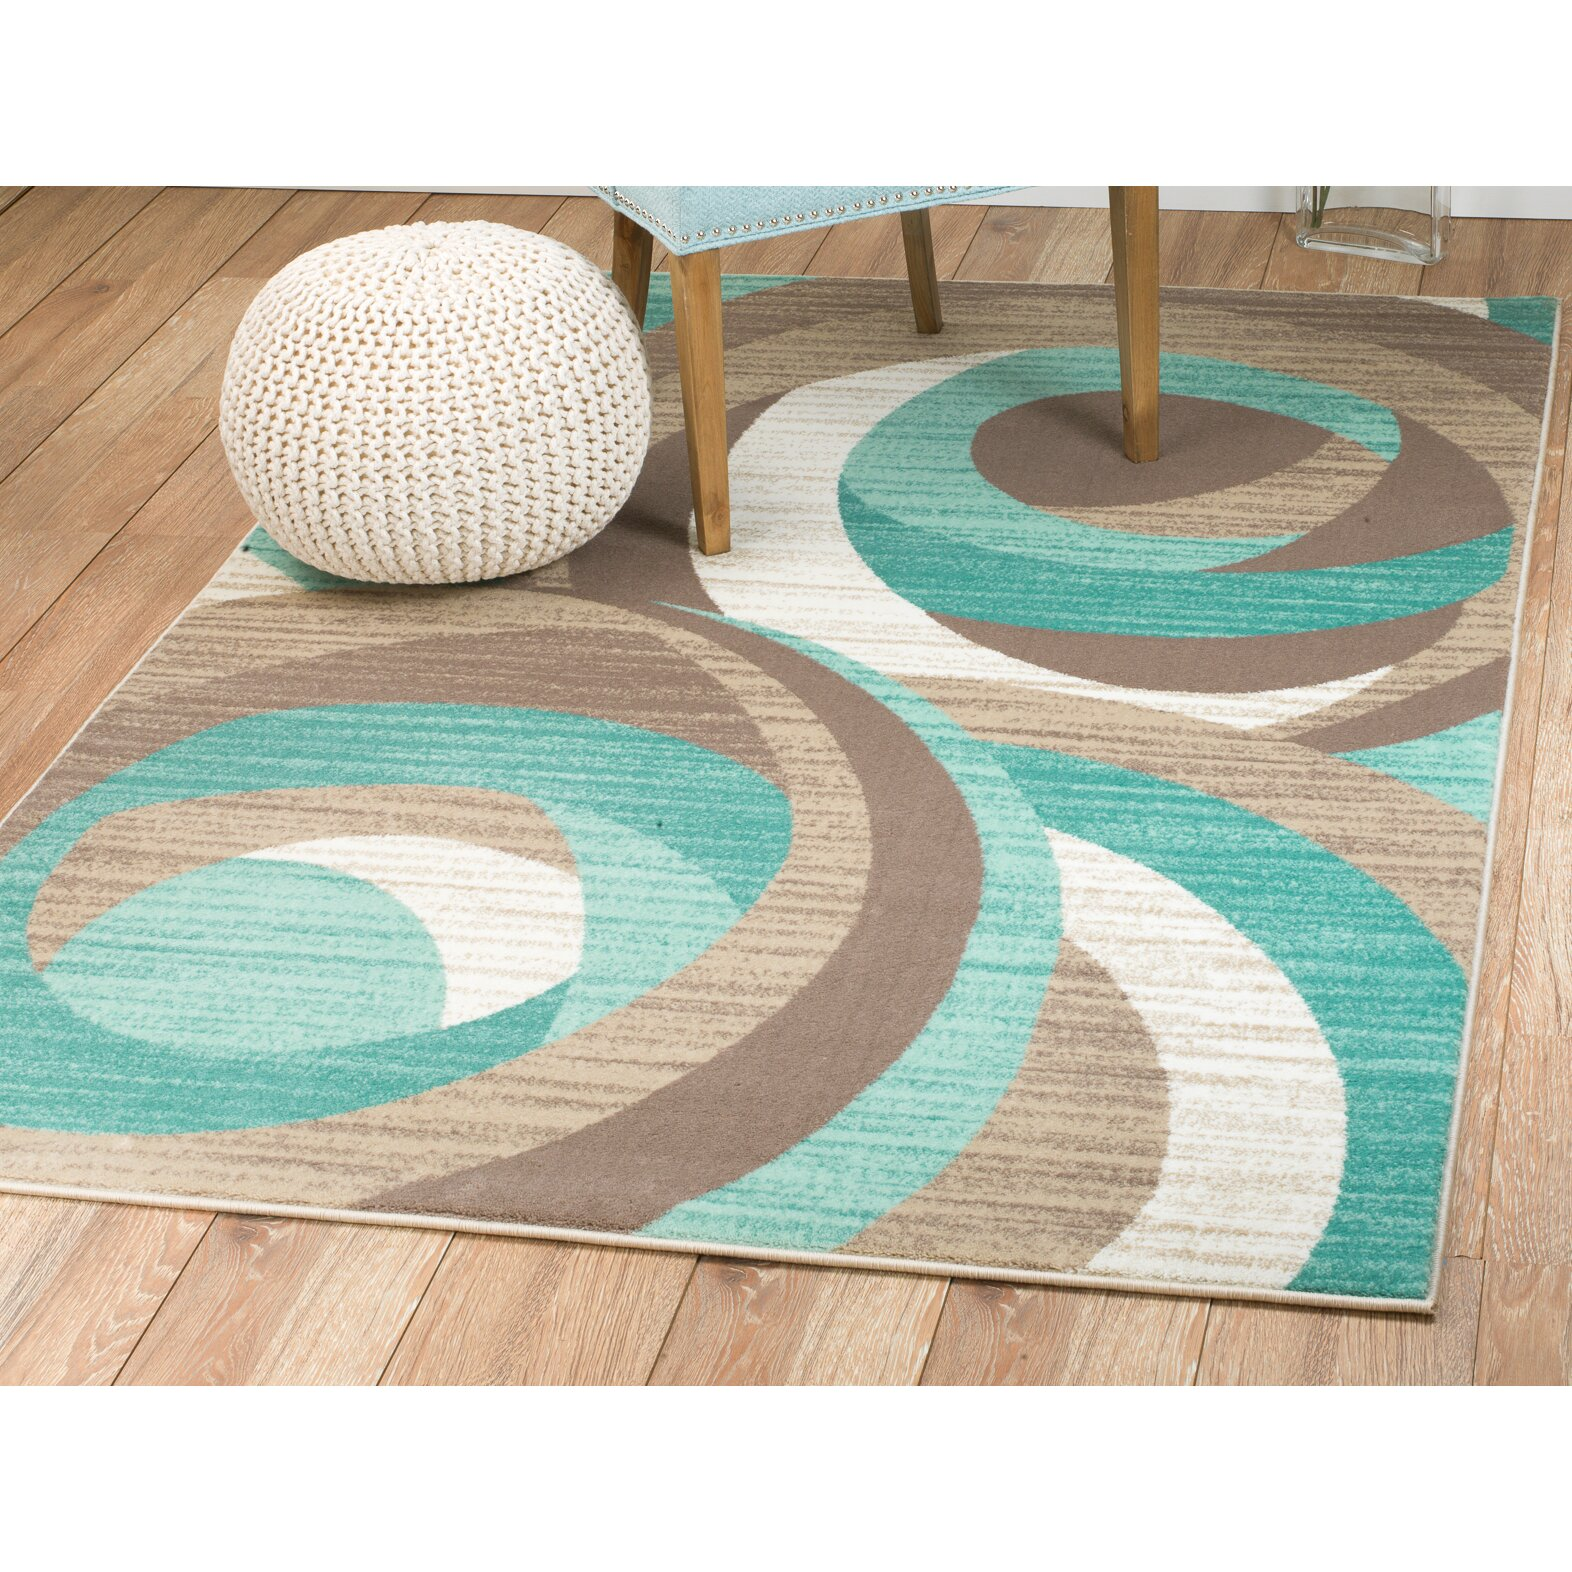 Rug And Decor Inc. Summit Teal Area Rug & Reviews